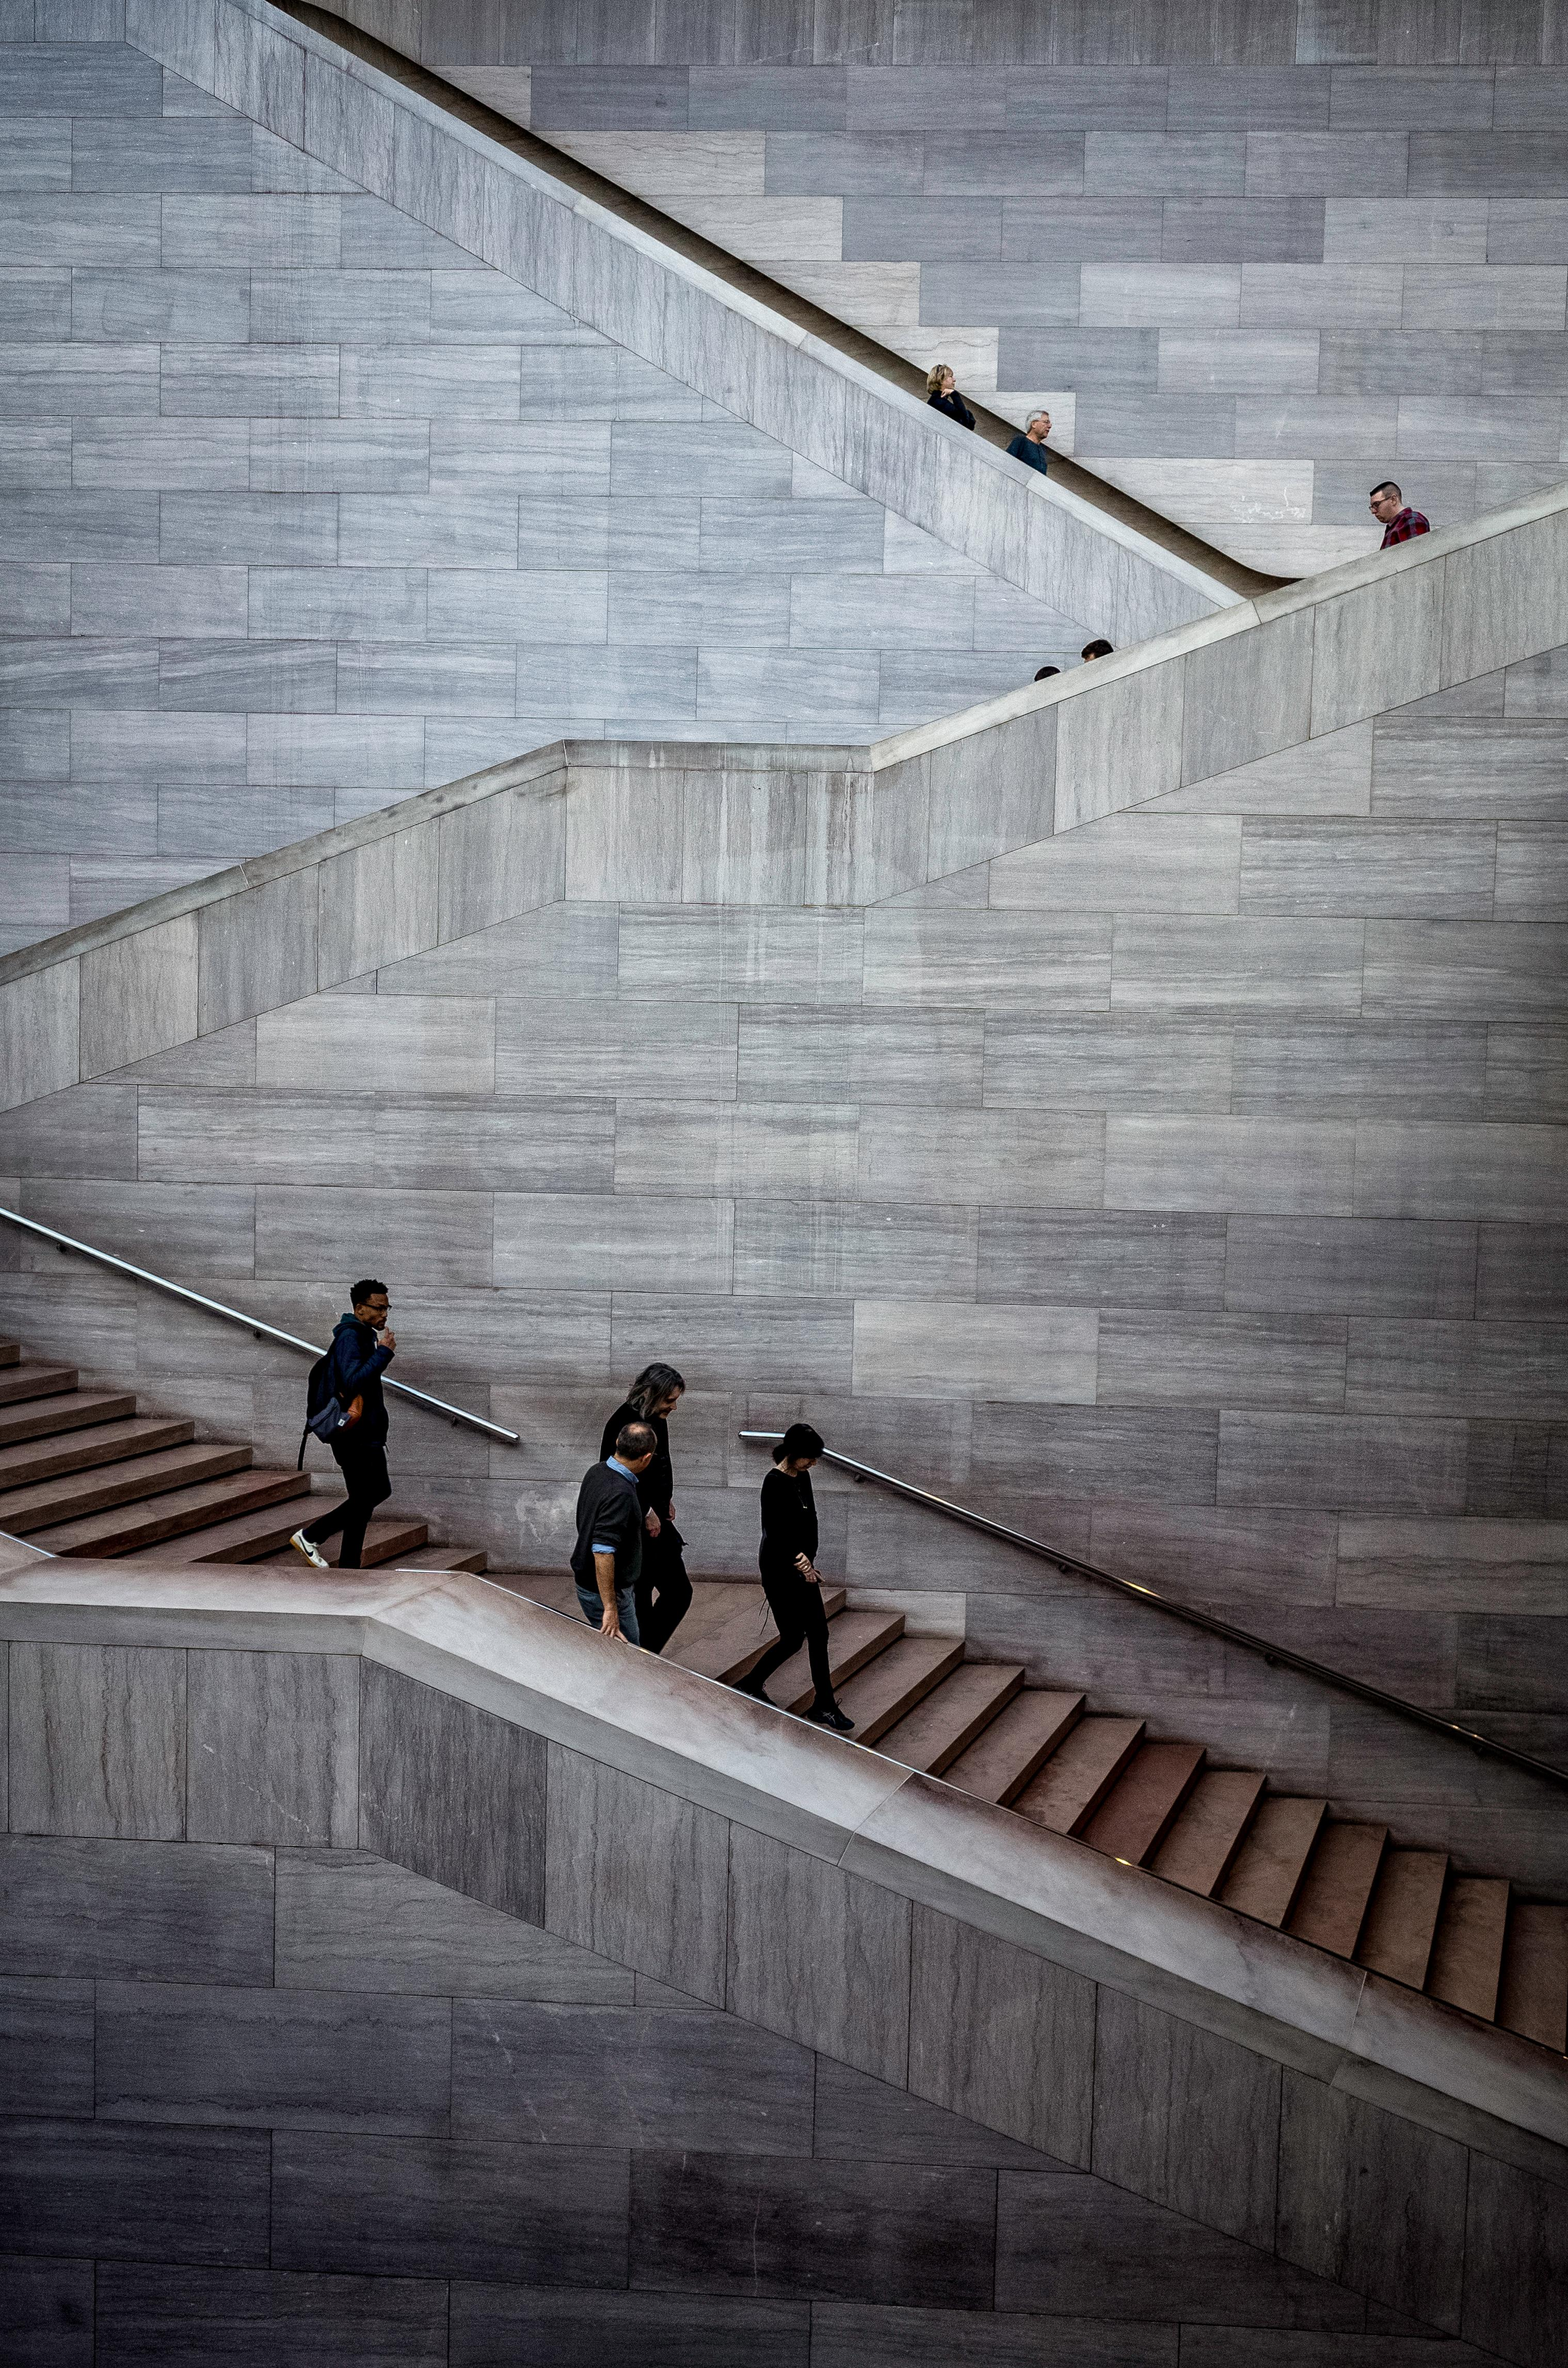 People going up and down the stairs at the National Gallery of Art. Taken January, 2018. (Image: Adam Brockett)